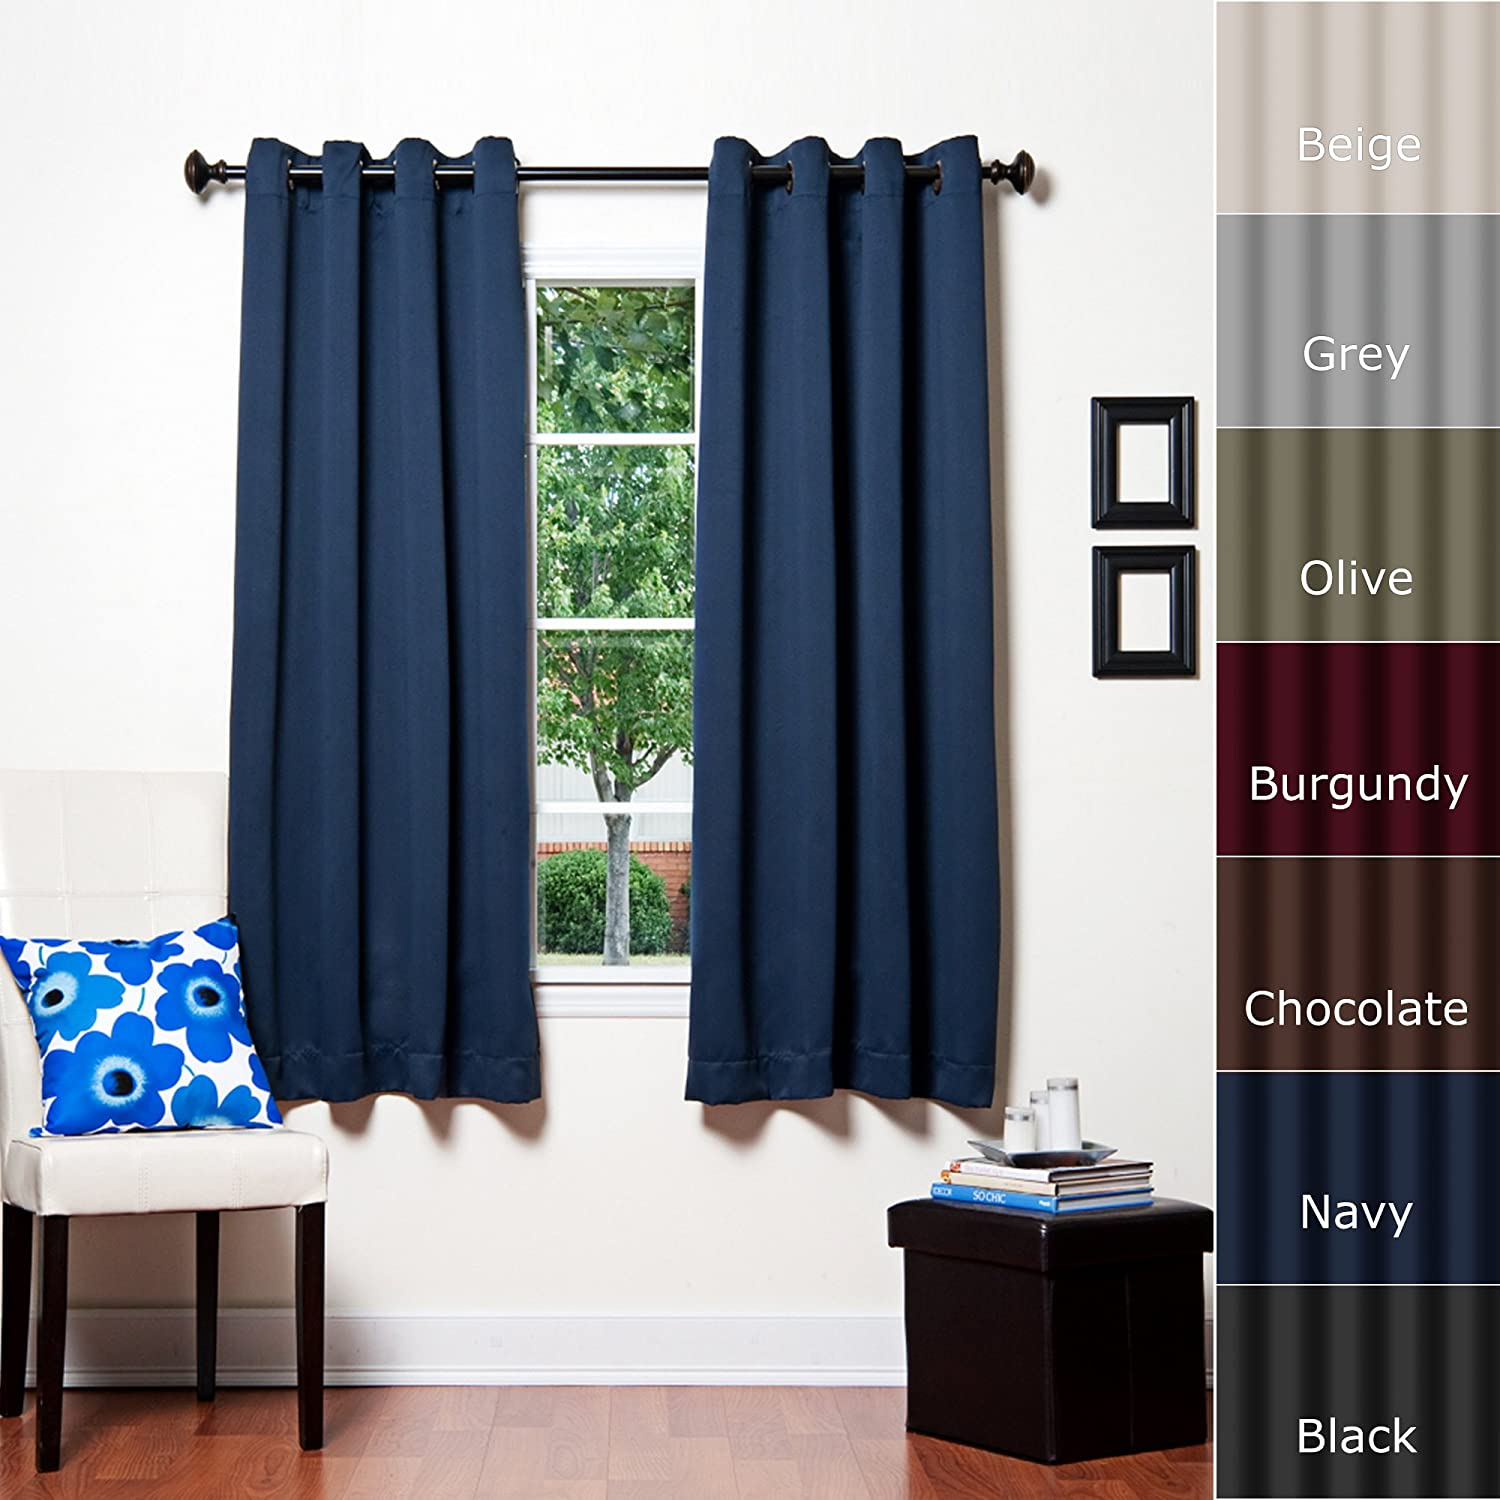 Best Home Fashion Basic Thermal Insulated Blackout Curtains - Antique Bronze Grommet Top - Navy